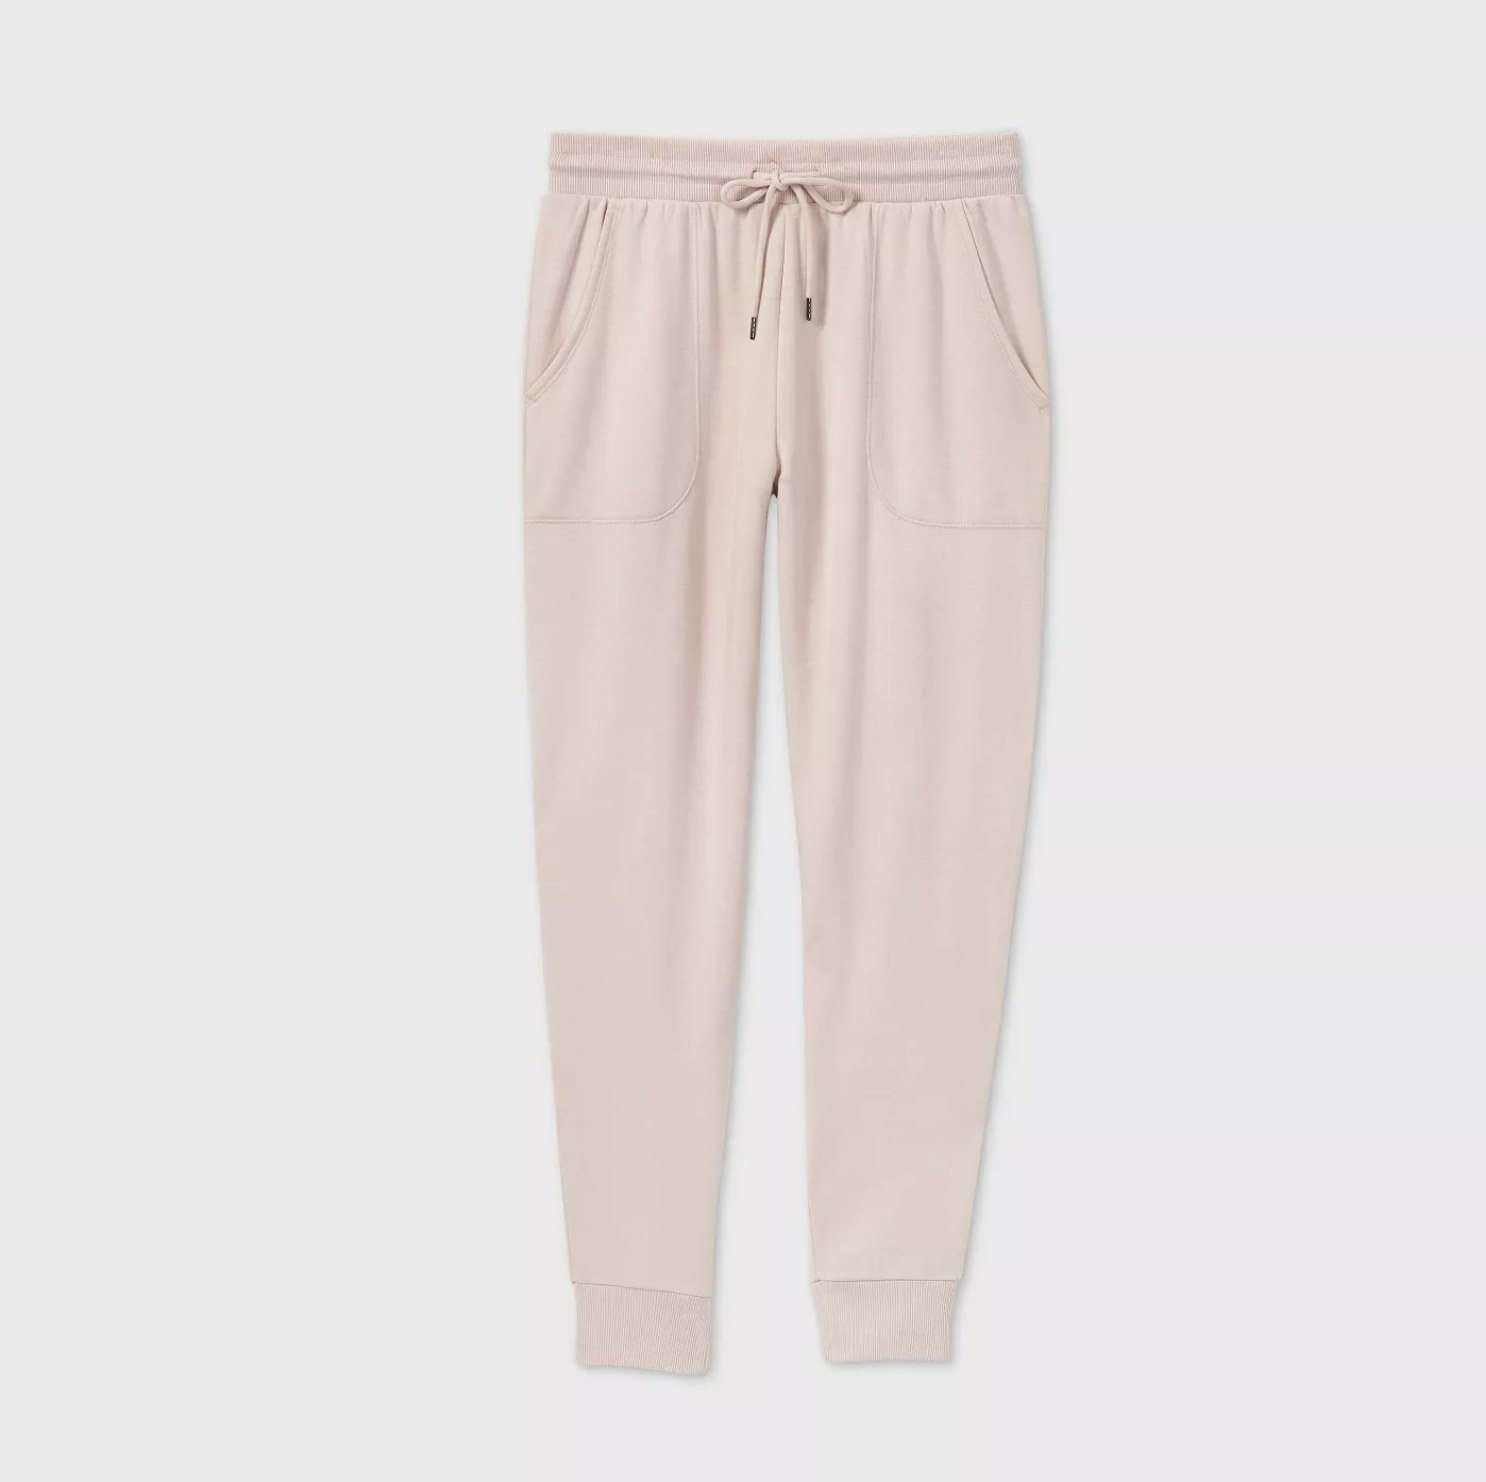 A pair of blush pink joggers with pockets and an elastic waist band